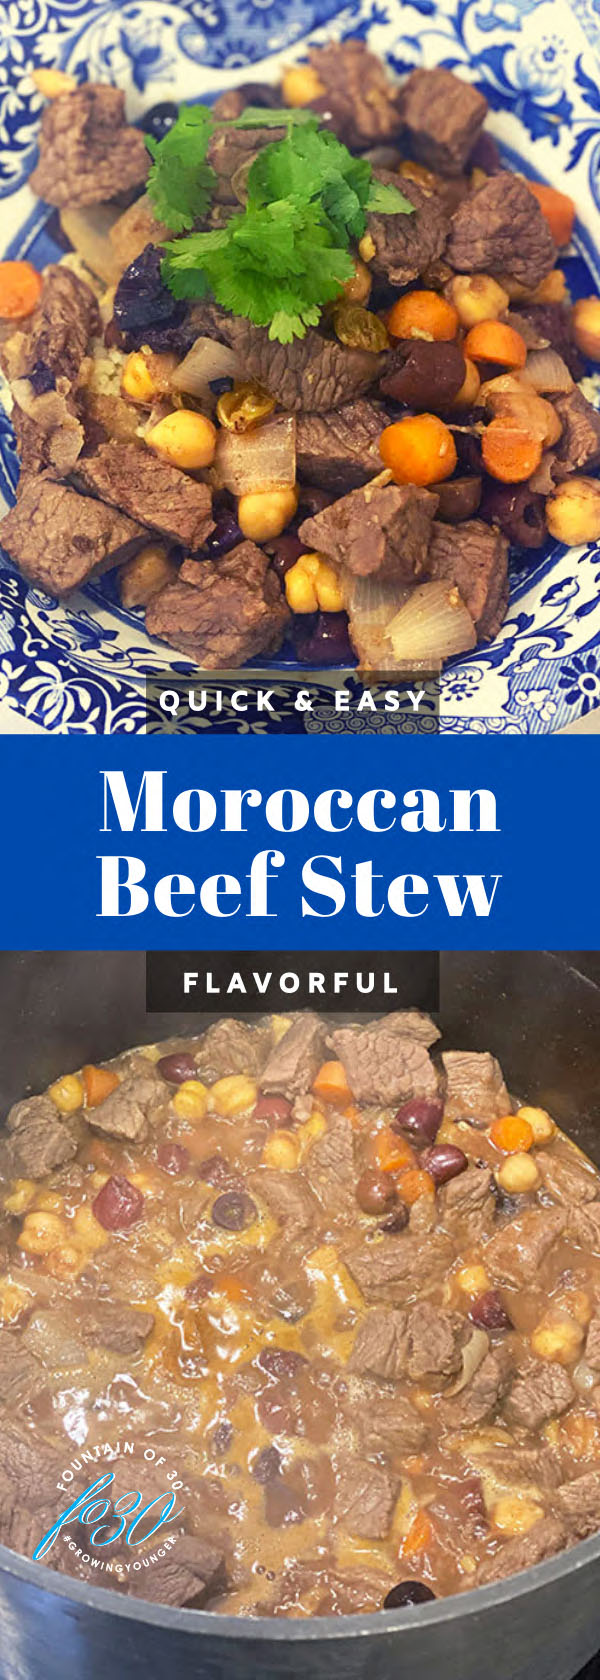 easy moroccan beef stew fountainof30